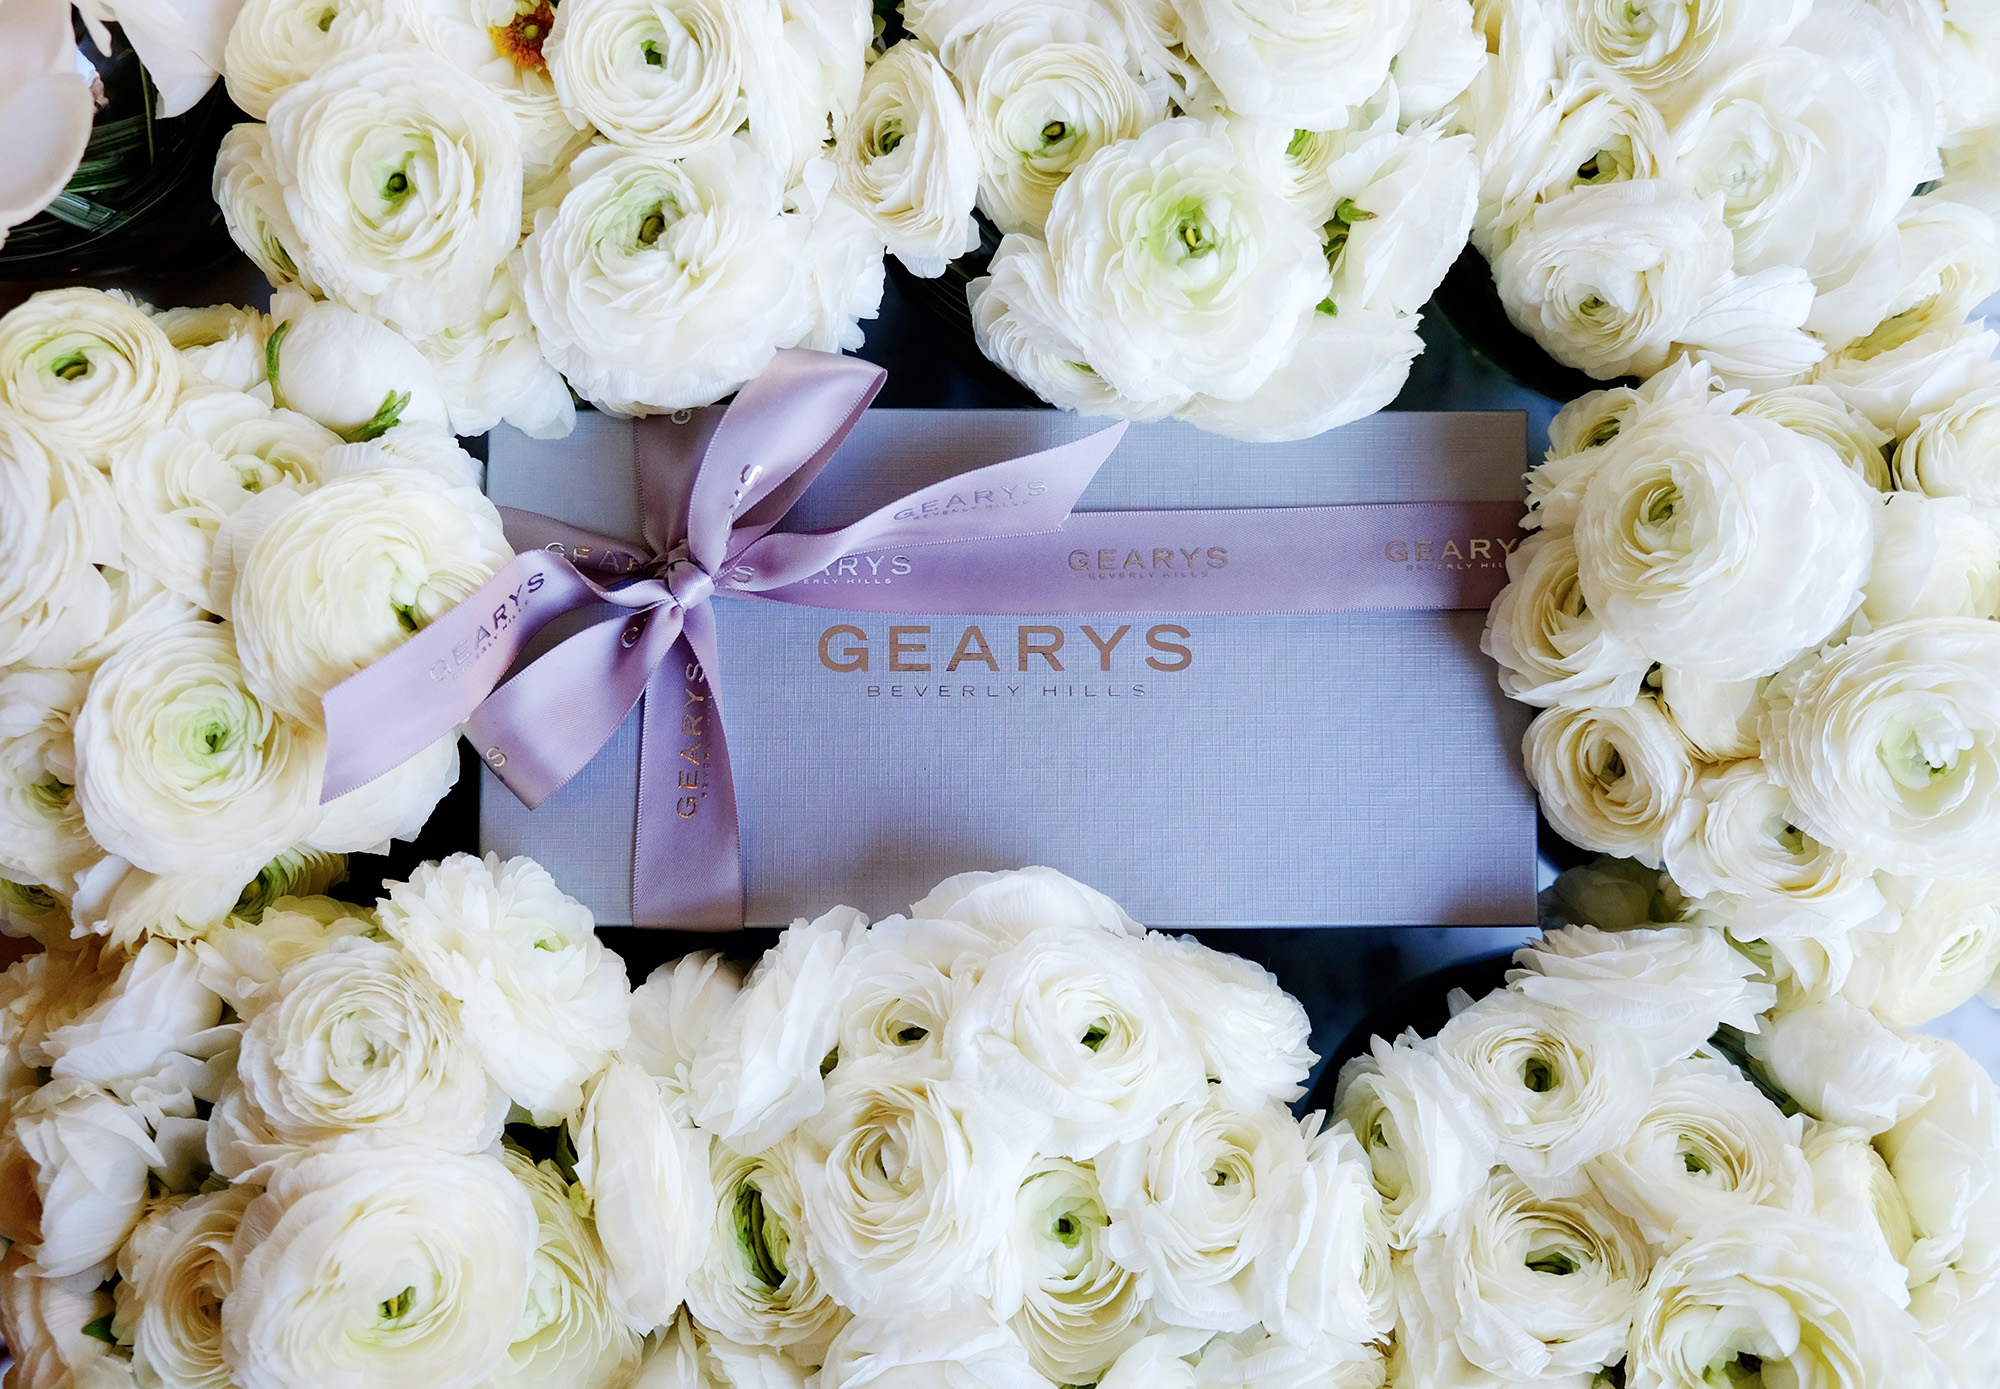 gearys wedding registry checklist what to register for